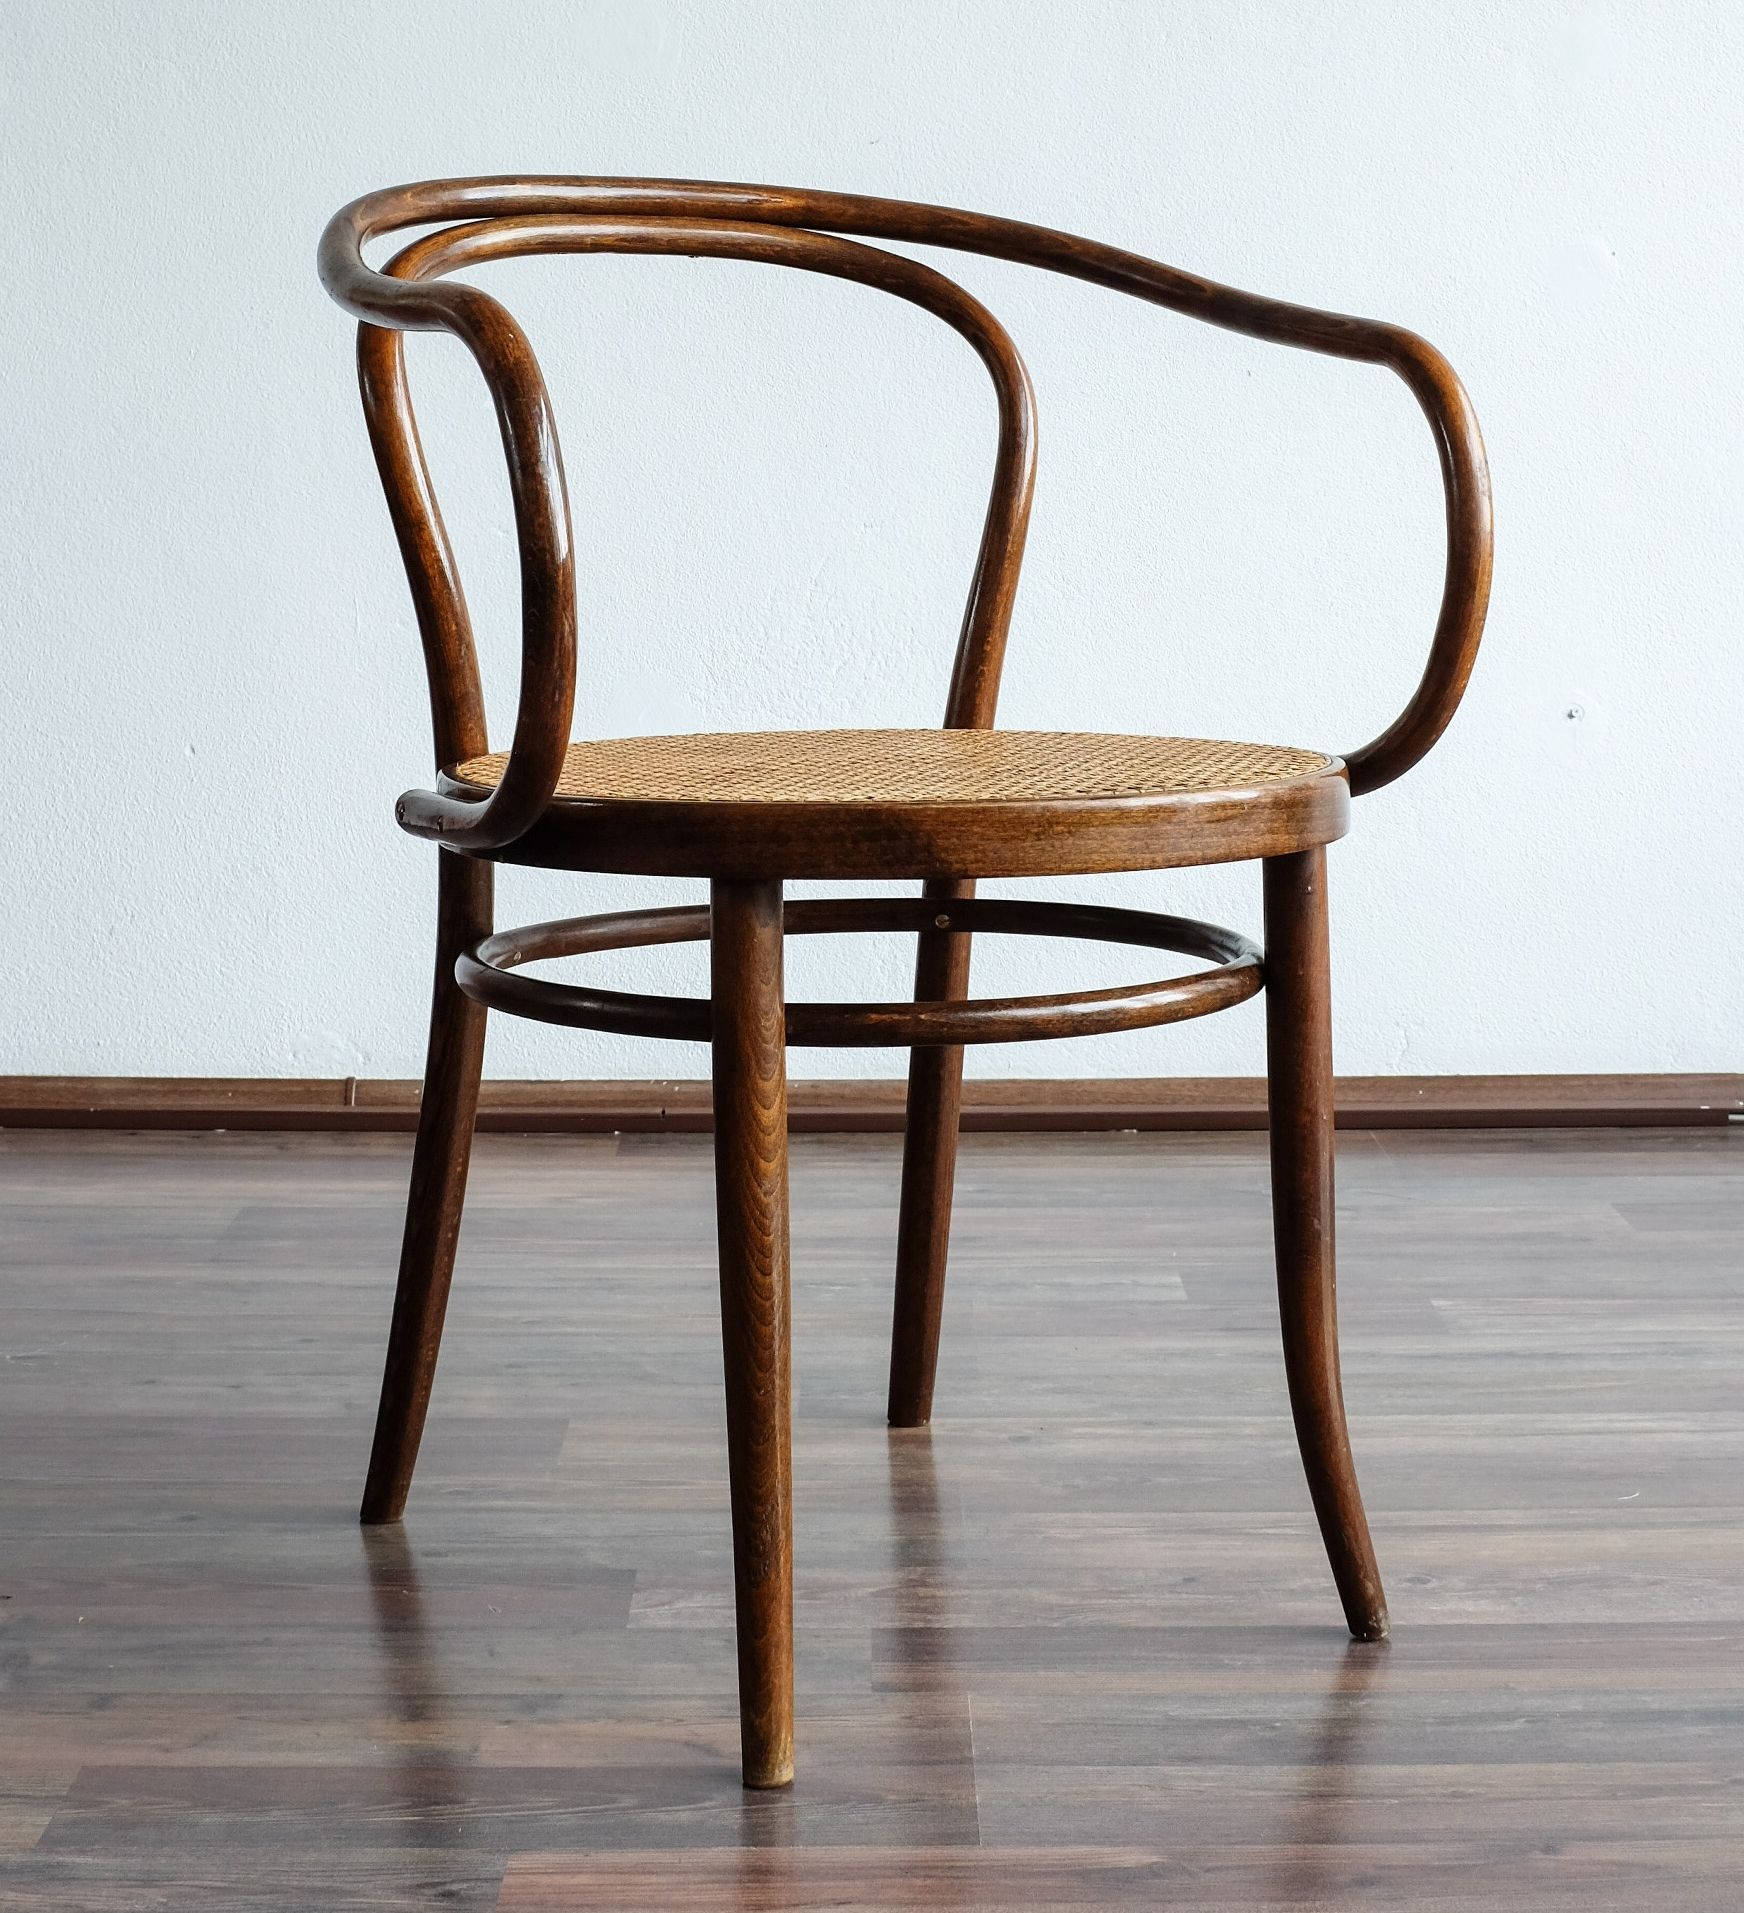 chair design buy rattan dining room table and chairs bentwood made by drevounia czechoslovakia cool stuff to